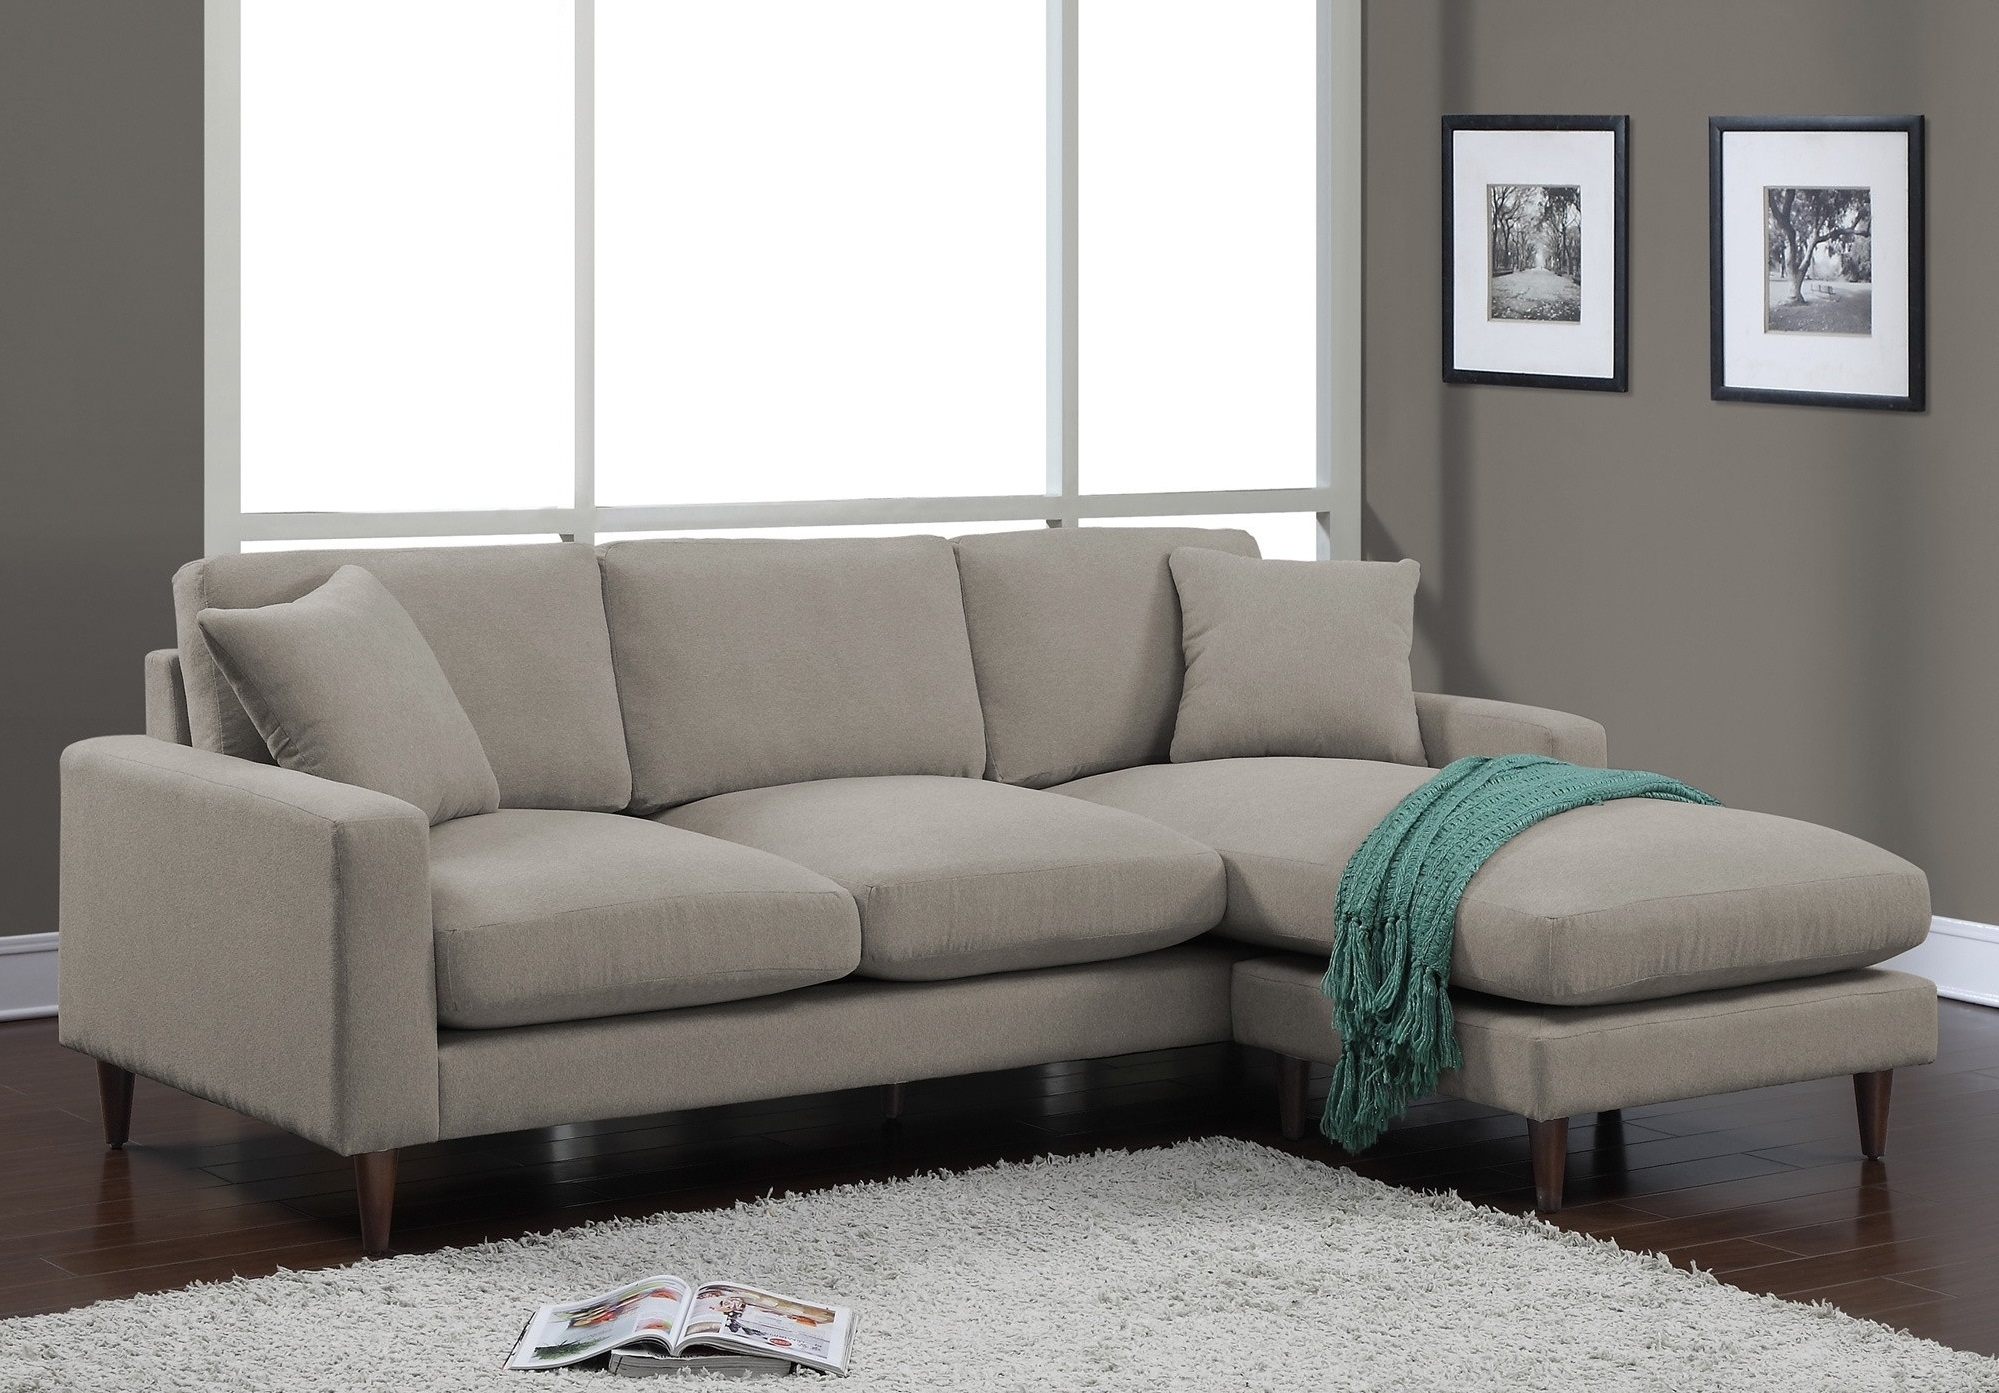 Furniture : Sleeper Sectional Sofa For Small Spaces 2017 Furnitures inside Kansas City Sectional Sofas (Image 5 of 10)